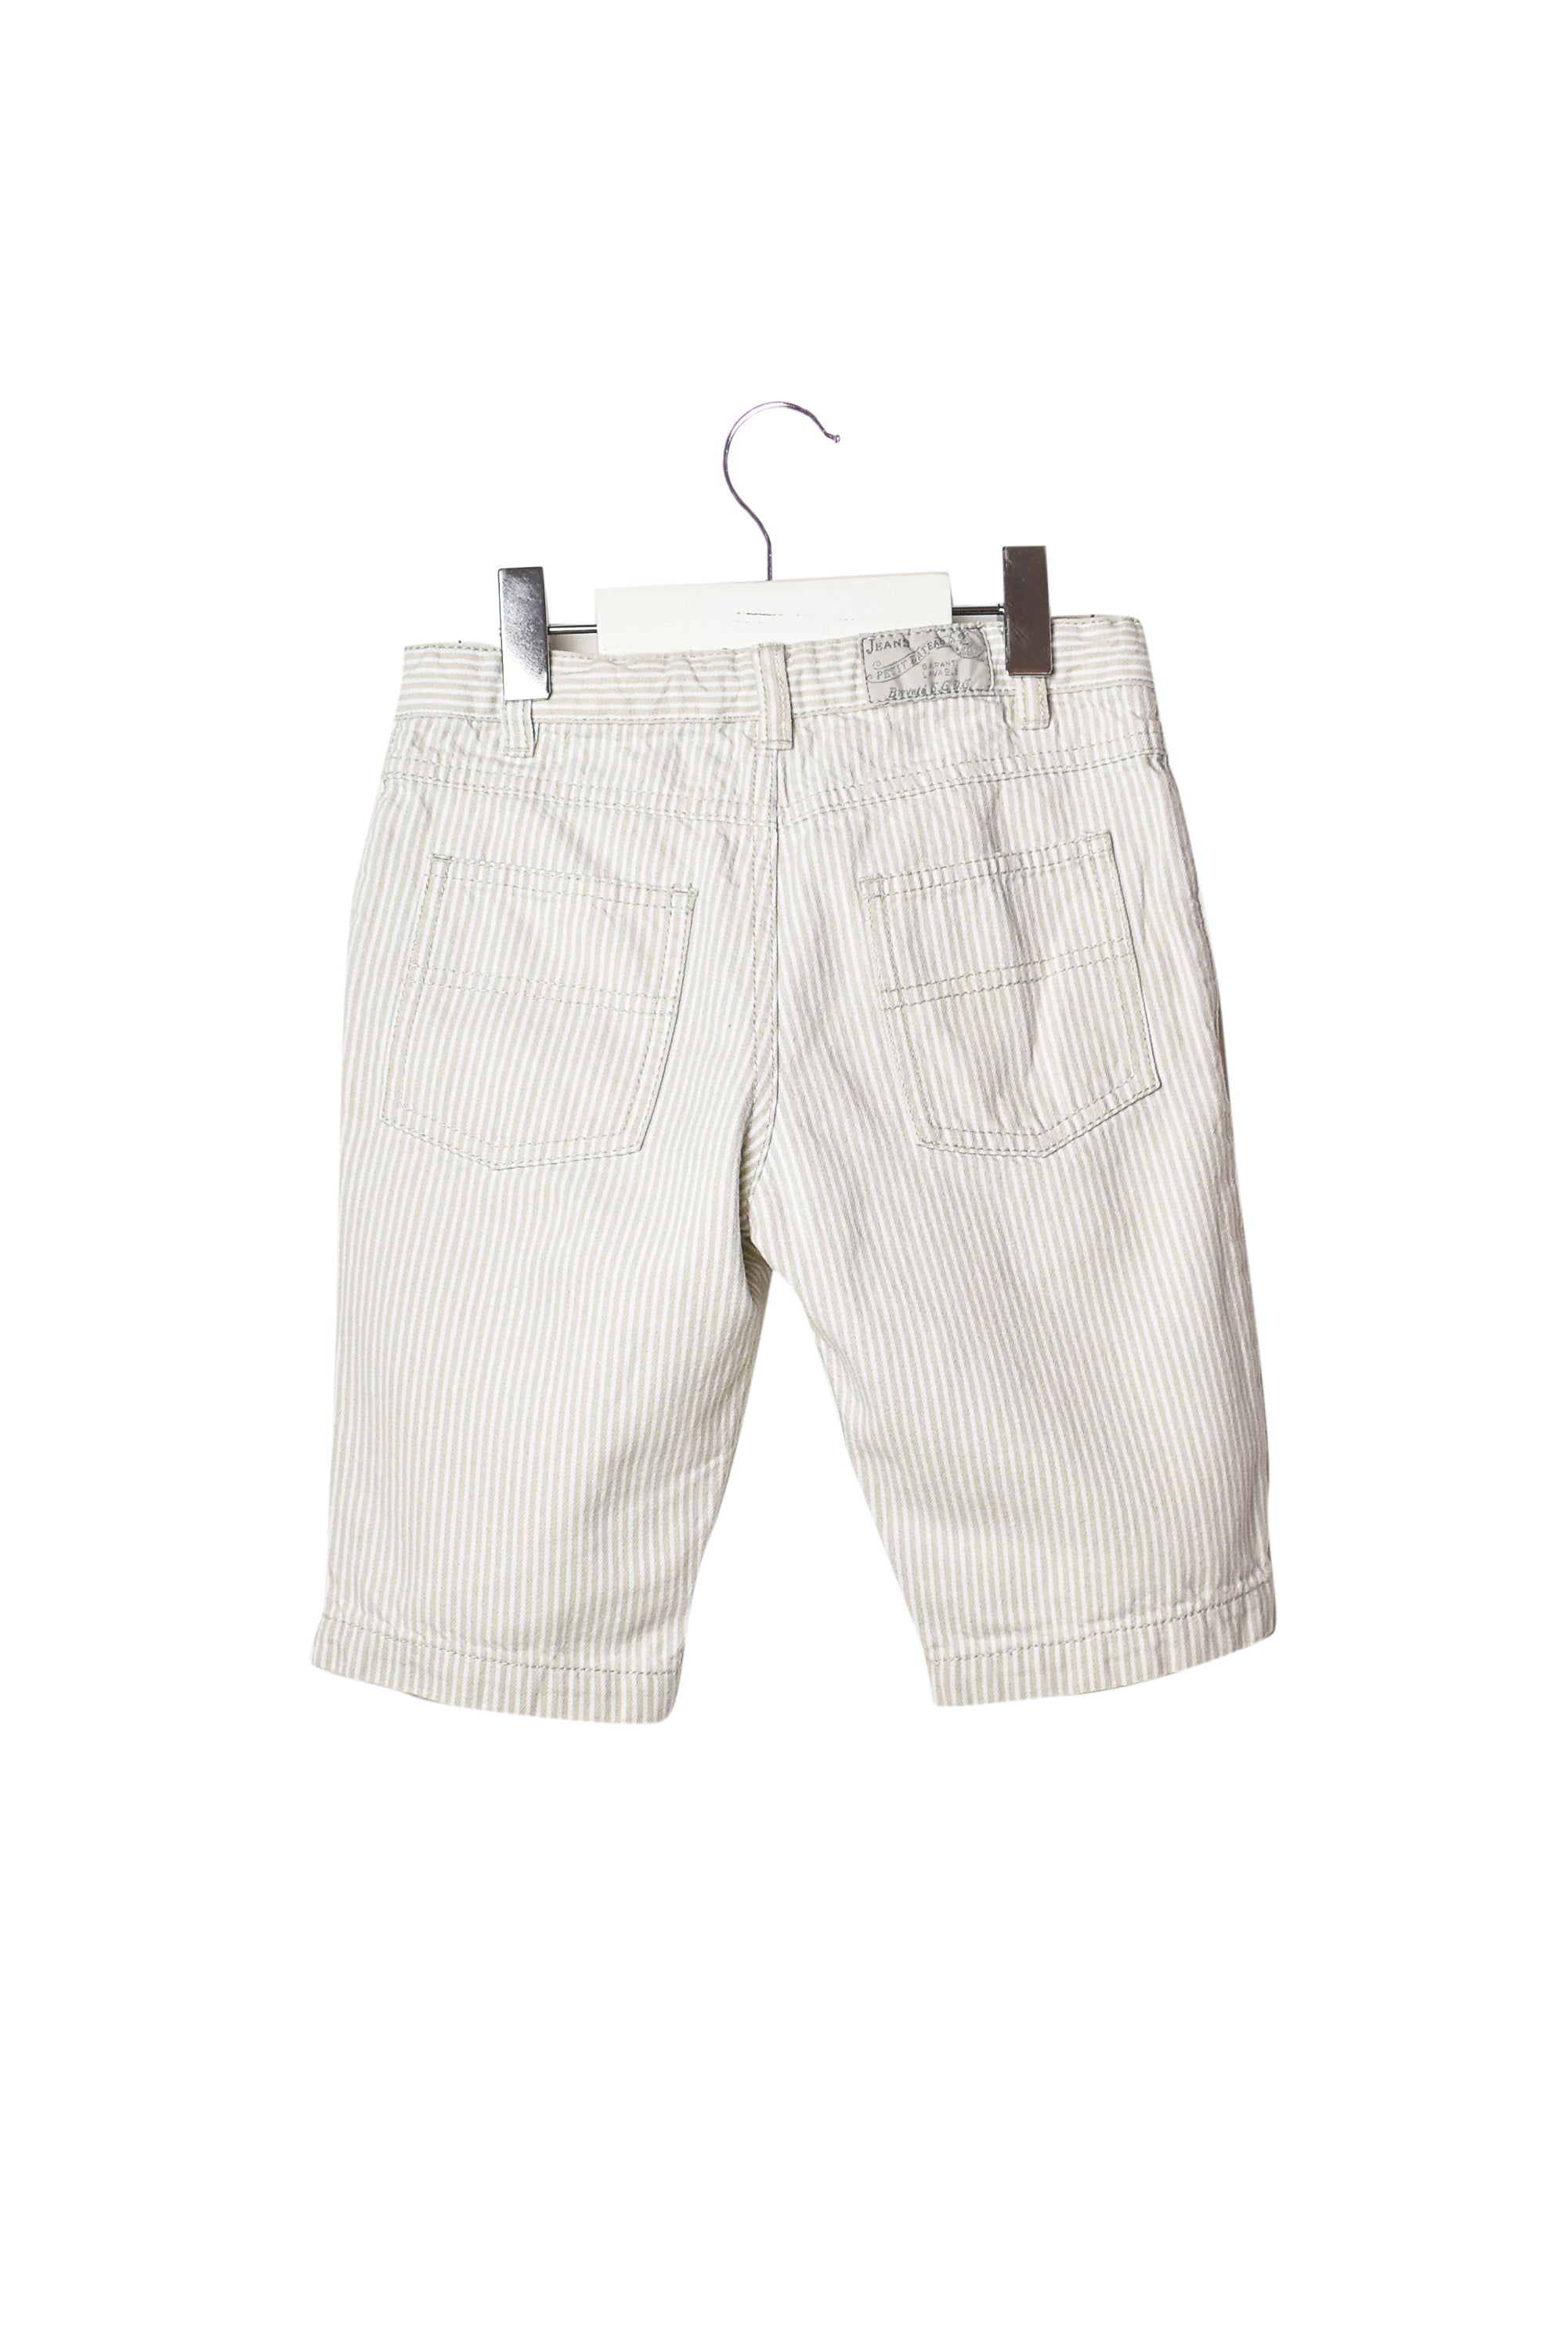 10007619 Petit Bateau Kids~ Pants 6T at Retykle